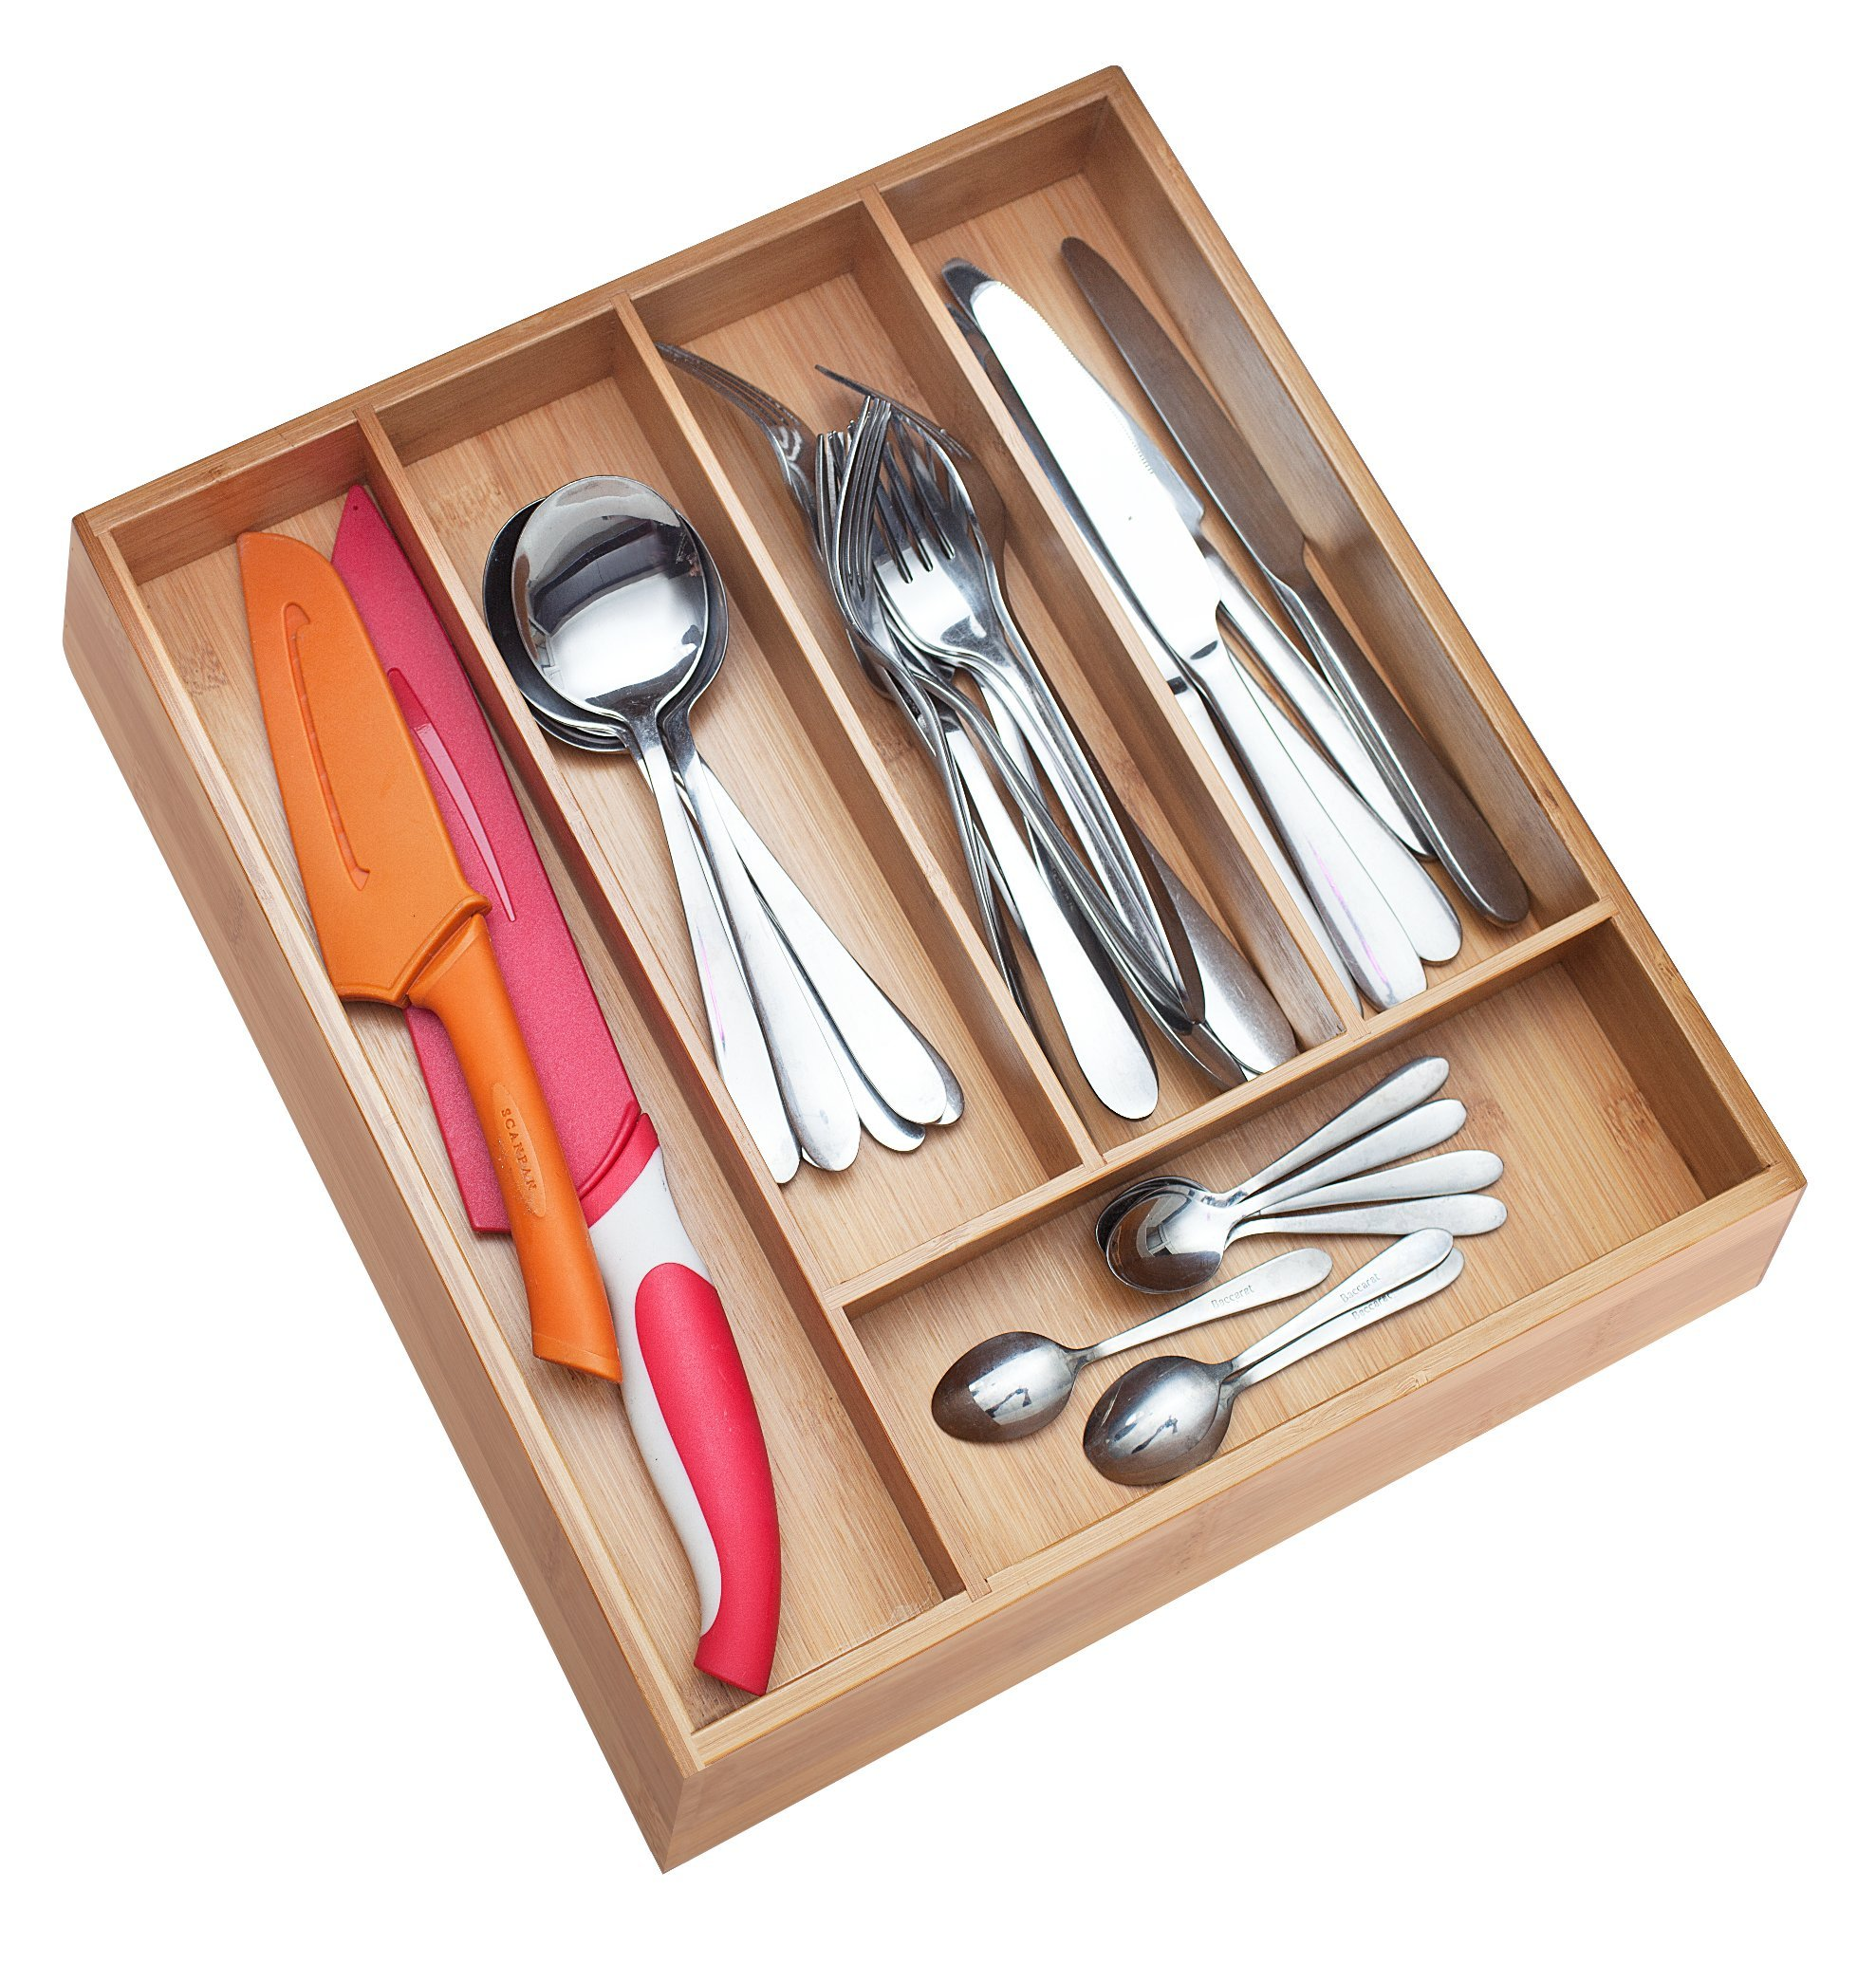 insert rev x organizer a shop in drawer shelf cutlery flatware wood pd